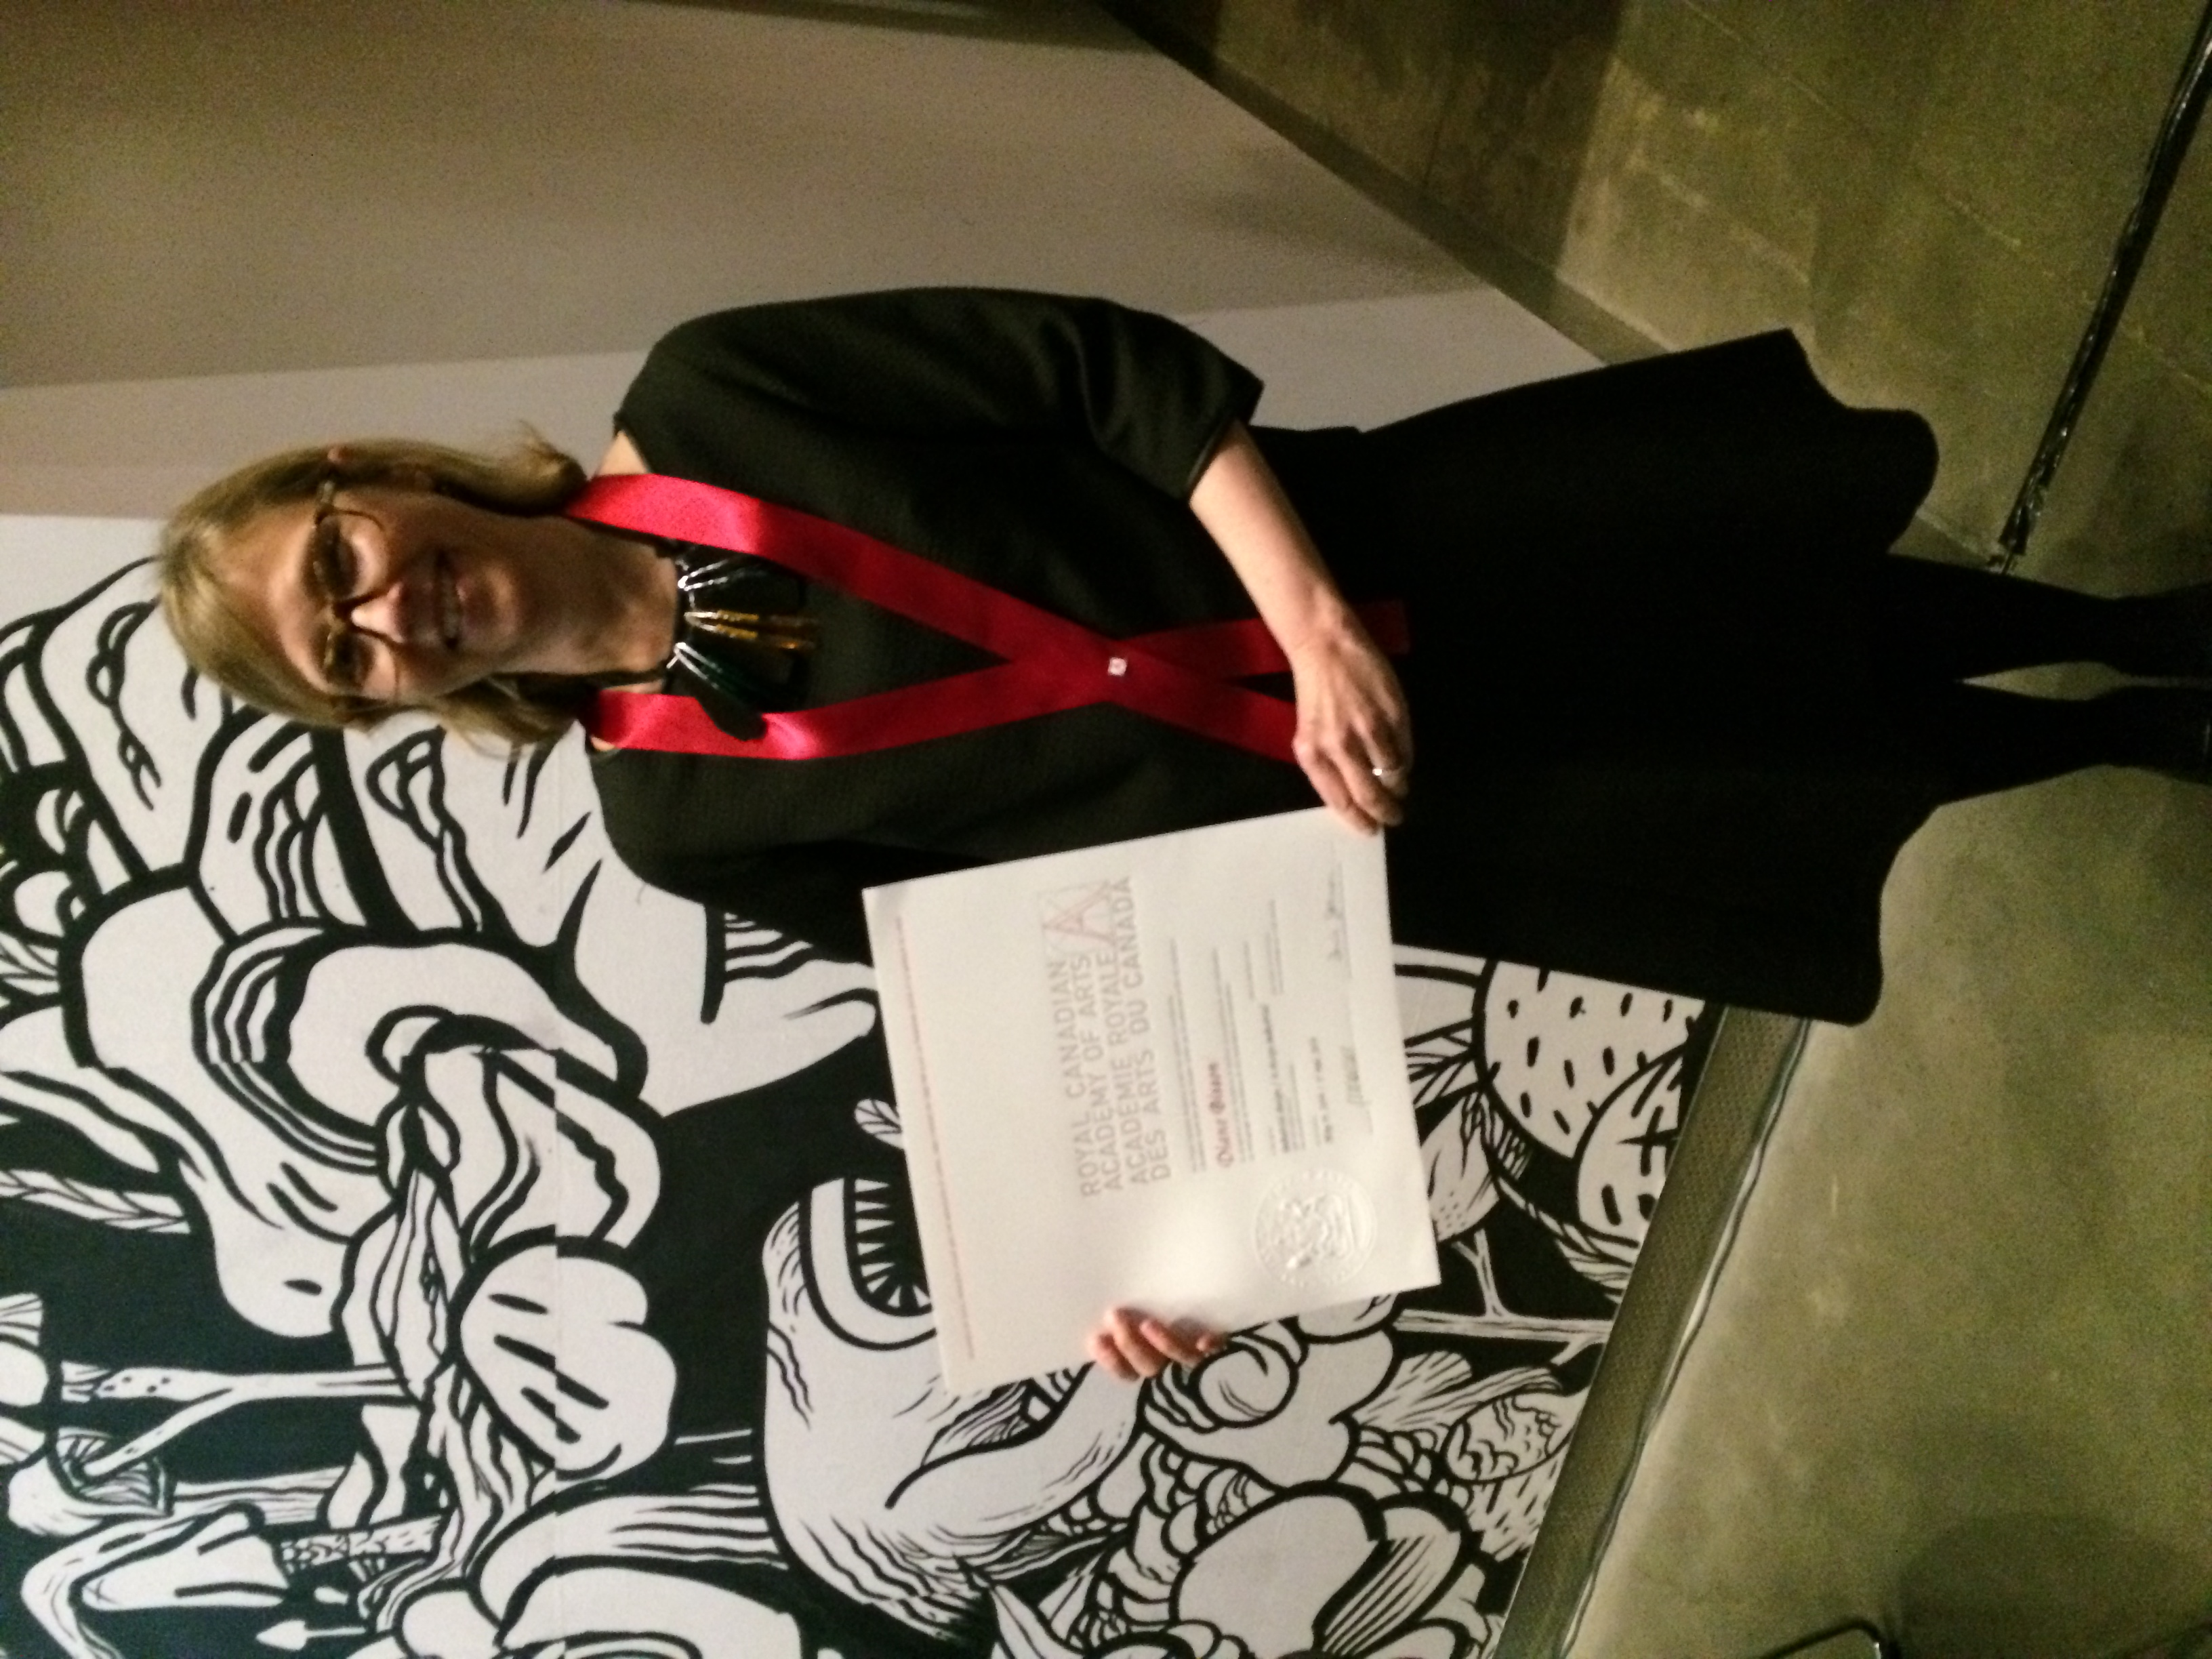 Diane Leclair Bisson was inducted into the RCA in 2014